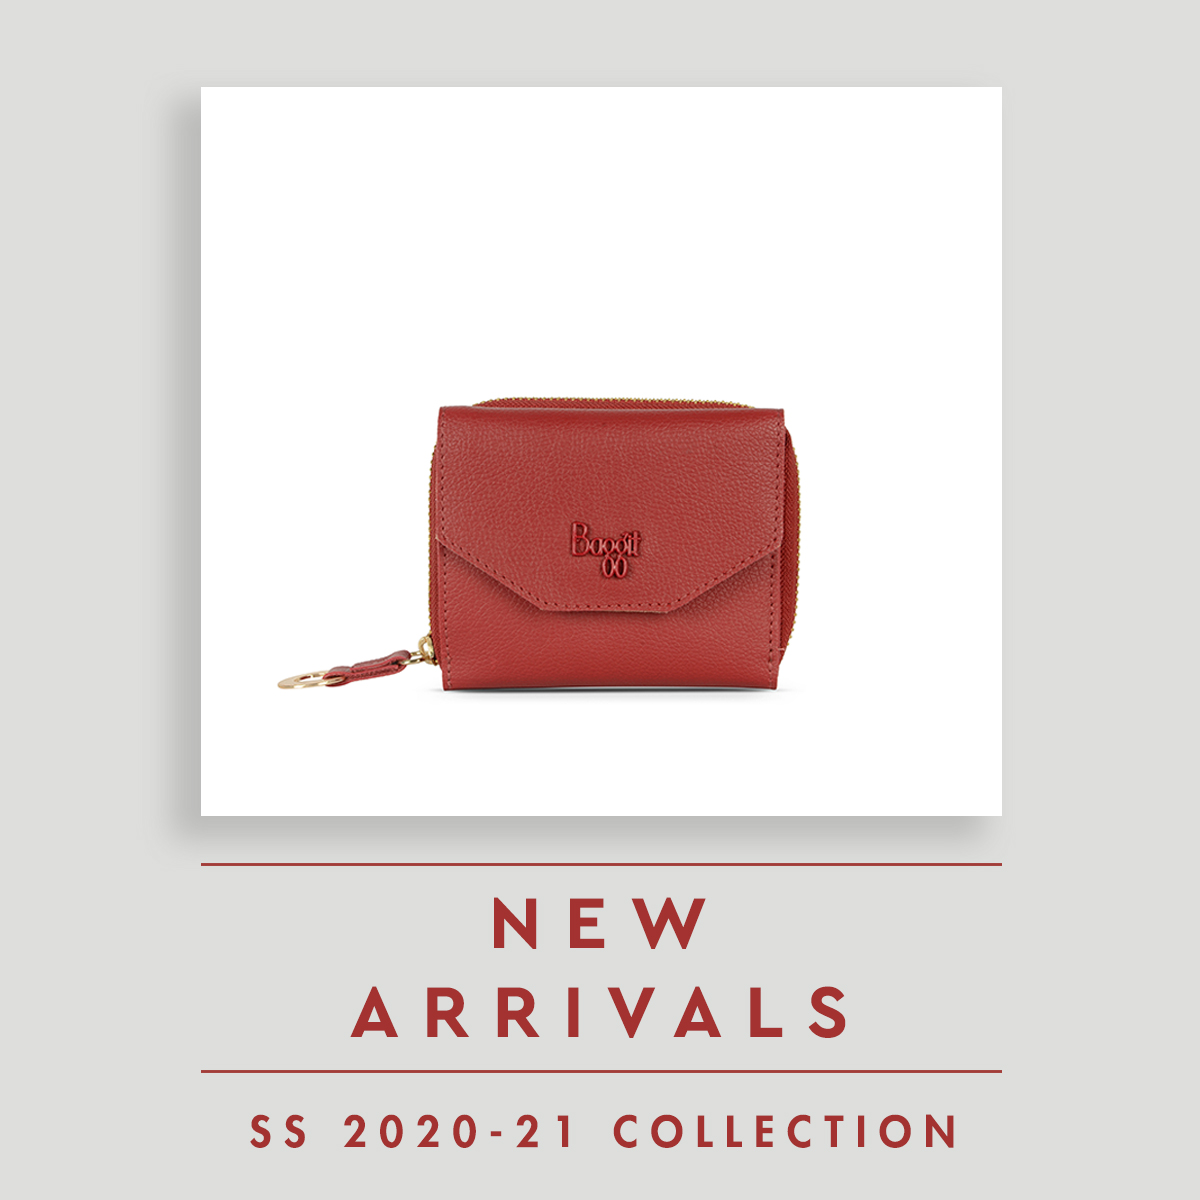 Solid colour mini wallets for minimalist and move-easy fashion for organized ladies by Baggit. Get your mini wallets now. #miniwallet #ladieswallet #newarrivals #madeinindia https://t.co/oU7FNAmCrD